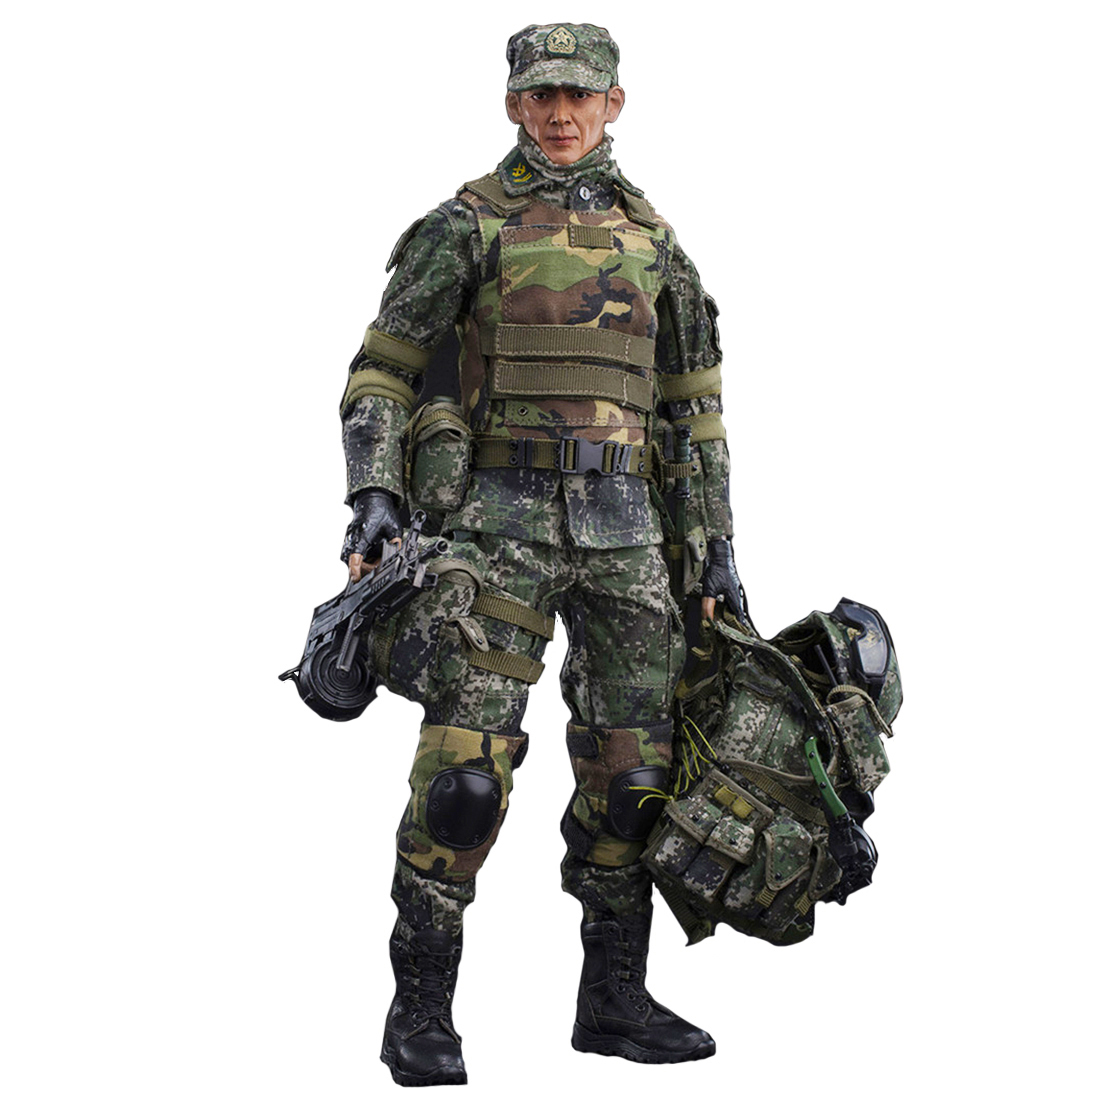 FLAGSET 1/6 Chinese armygreen Machine Fighter Soldier Model Action Figure Model Toys Hobbies For Kids Adults New Arrivel